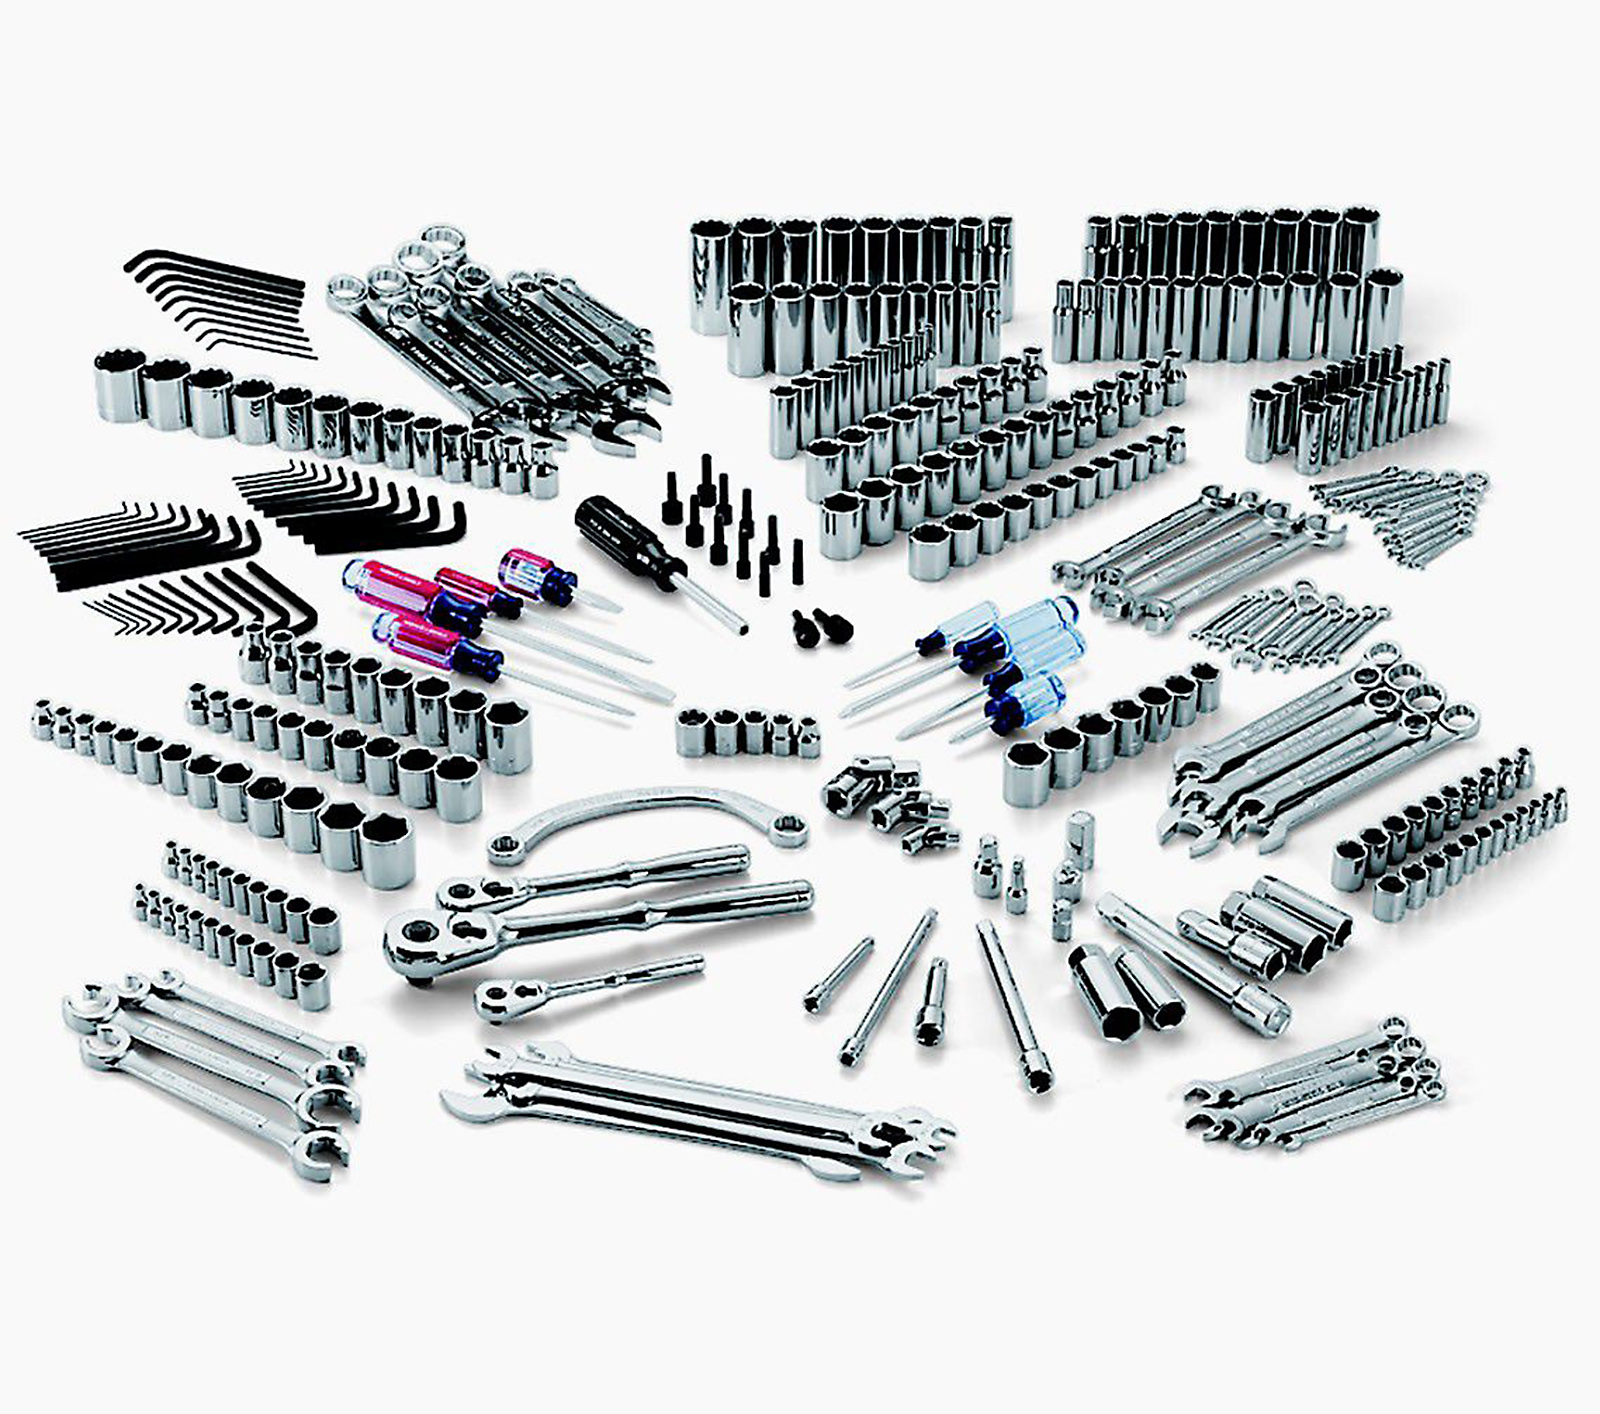 Craftsman 348-Piece Mechanics Tool Set